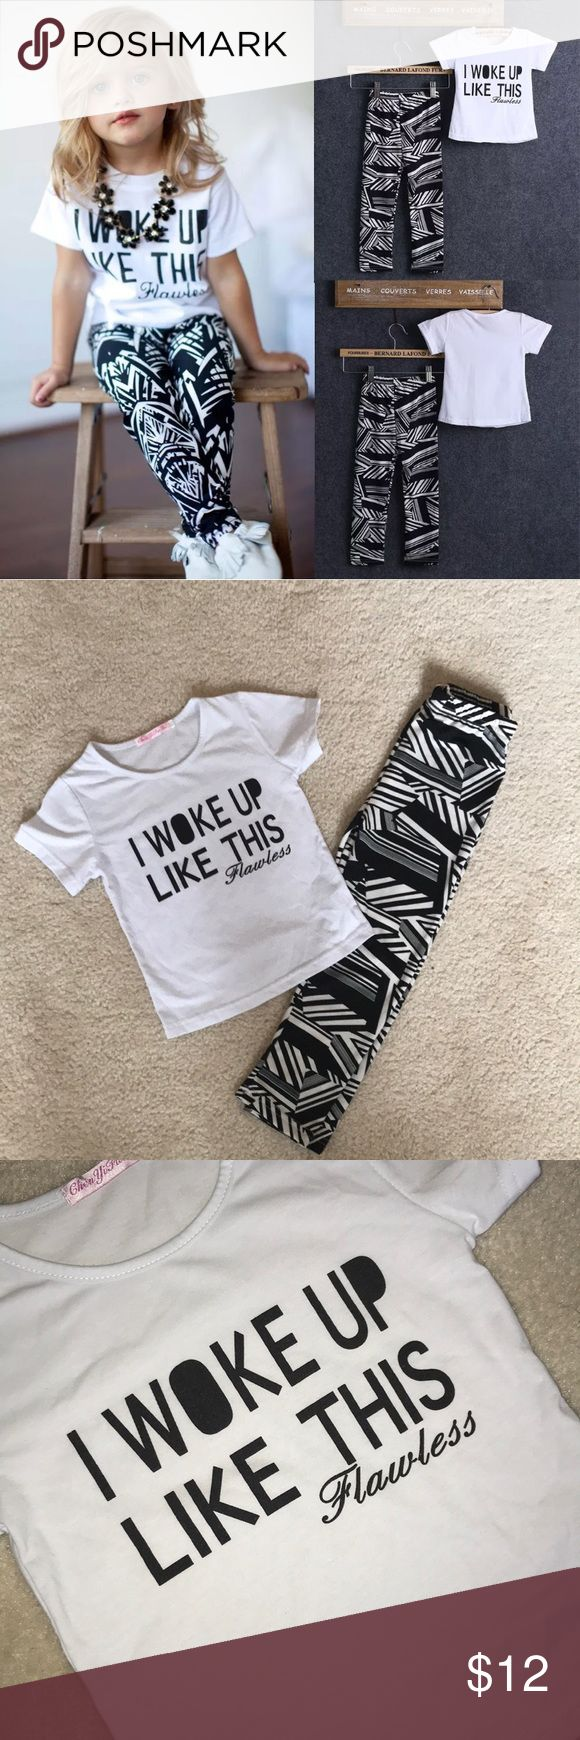 "😎 I Woke Up Like This Flawless 😎 Great condition. Graphic T that says, ""I woke up like this flawless."" Aztec print blackblack-and-white print pants. Material intact. No stains. Tags don't have a size but it's about a 3T. Comes from a smoke and pet free home. Offers welcomed. Matching Sets"